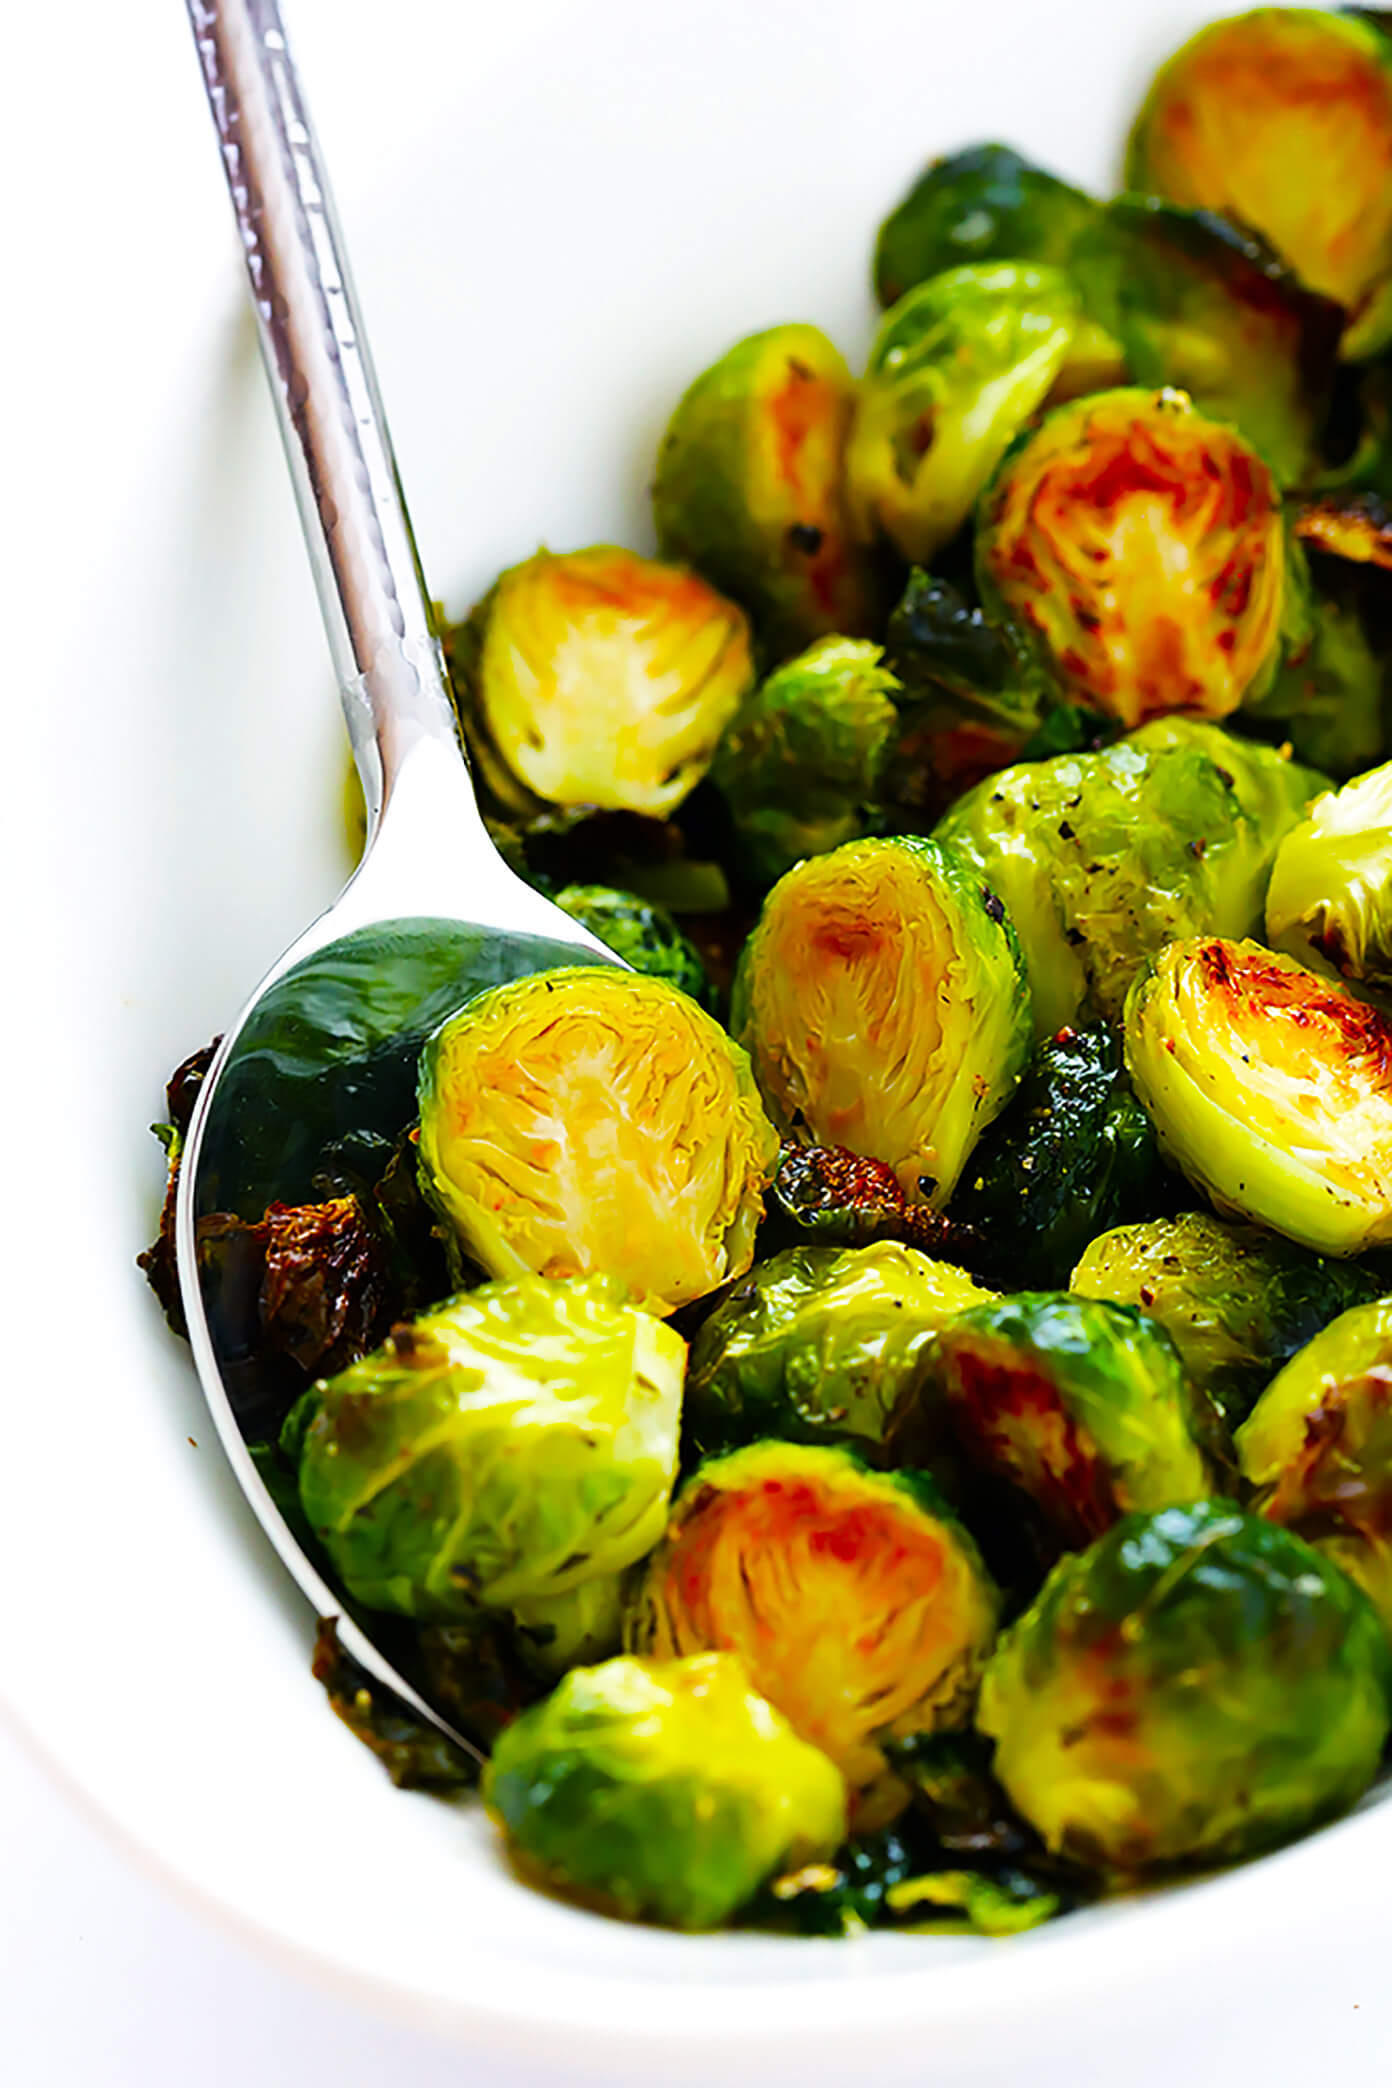 My favorite recipe for classic Roasted Brussels Sprouts. They're easy to make with whatever other seasonings sound good, but the classic recipe is hard to beat! | Gimme Some Oven